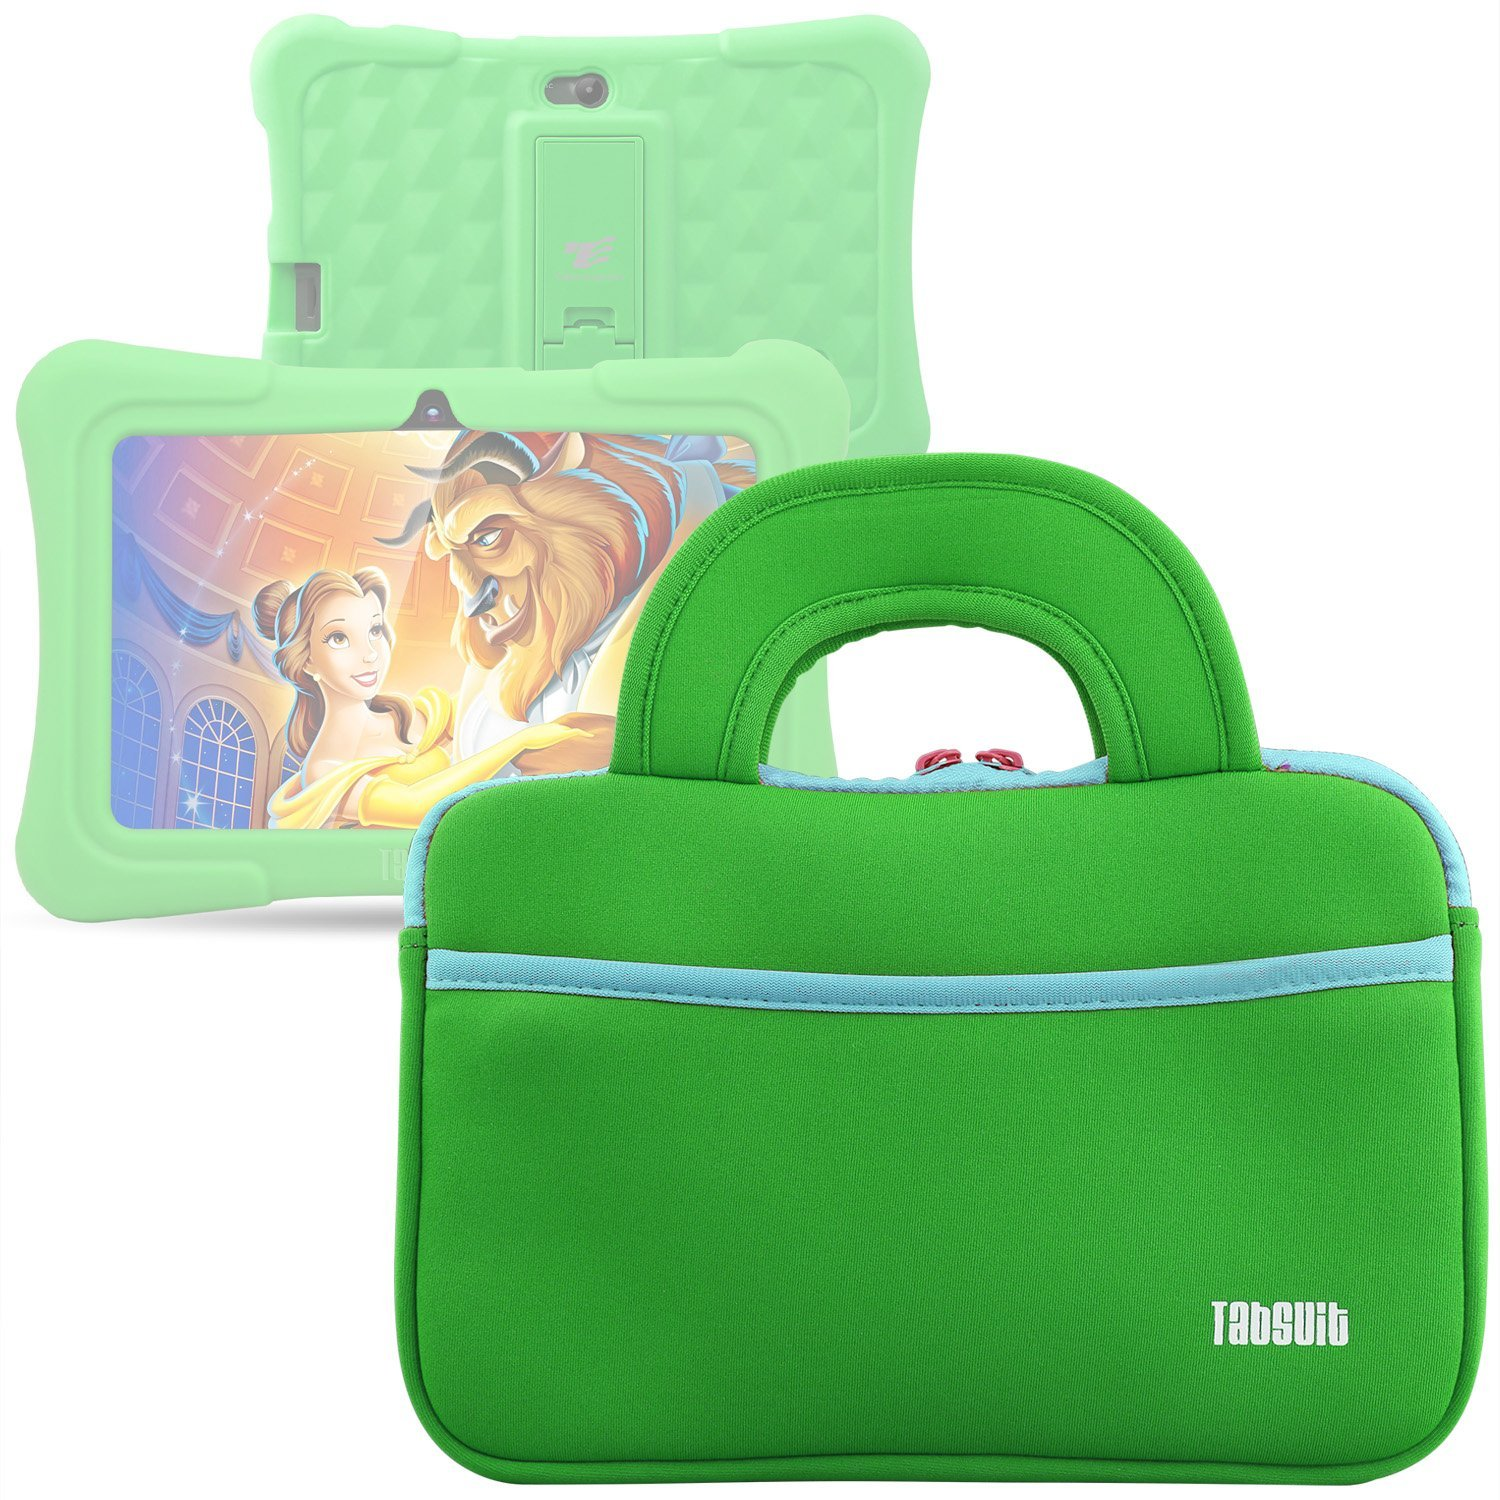 Dragon Touch 7 - 8 inch Tablet Sleeve, 7 ~ 8 inch Tablet Ultra-Portable Neoprene Zipper Carrying Sleeve Case Bag with Accessory Pocket